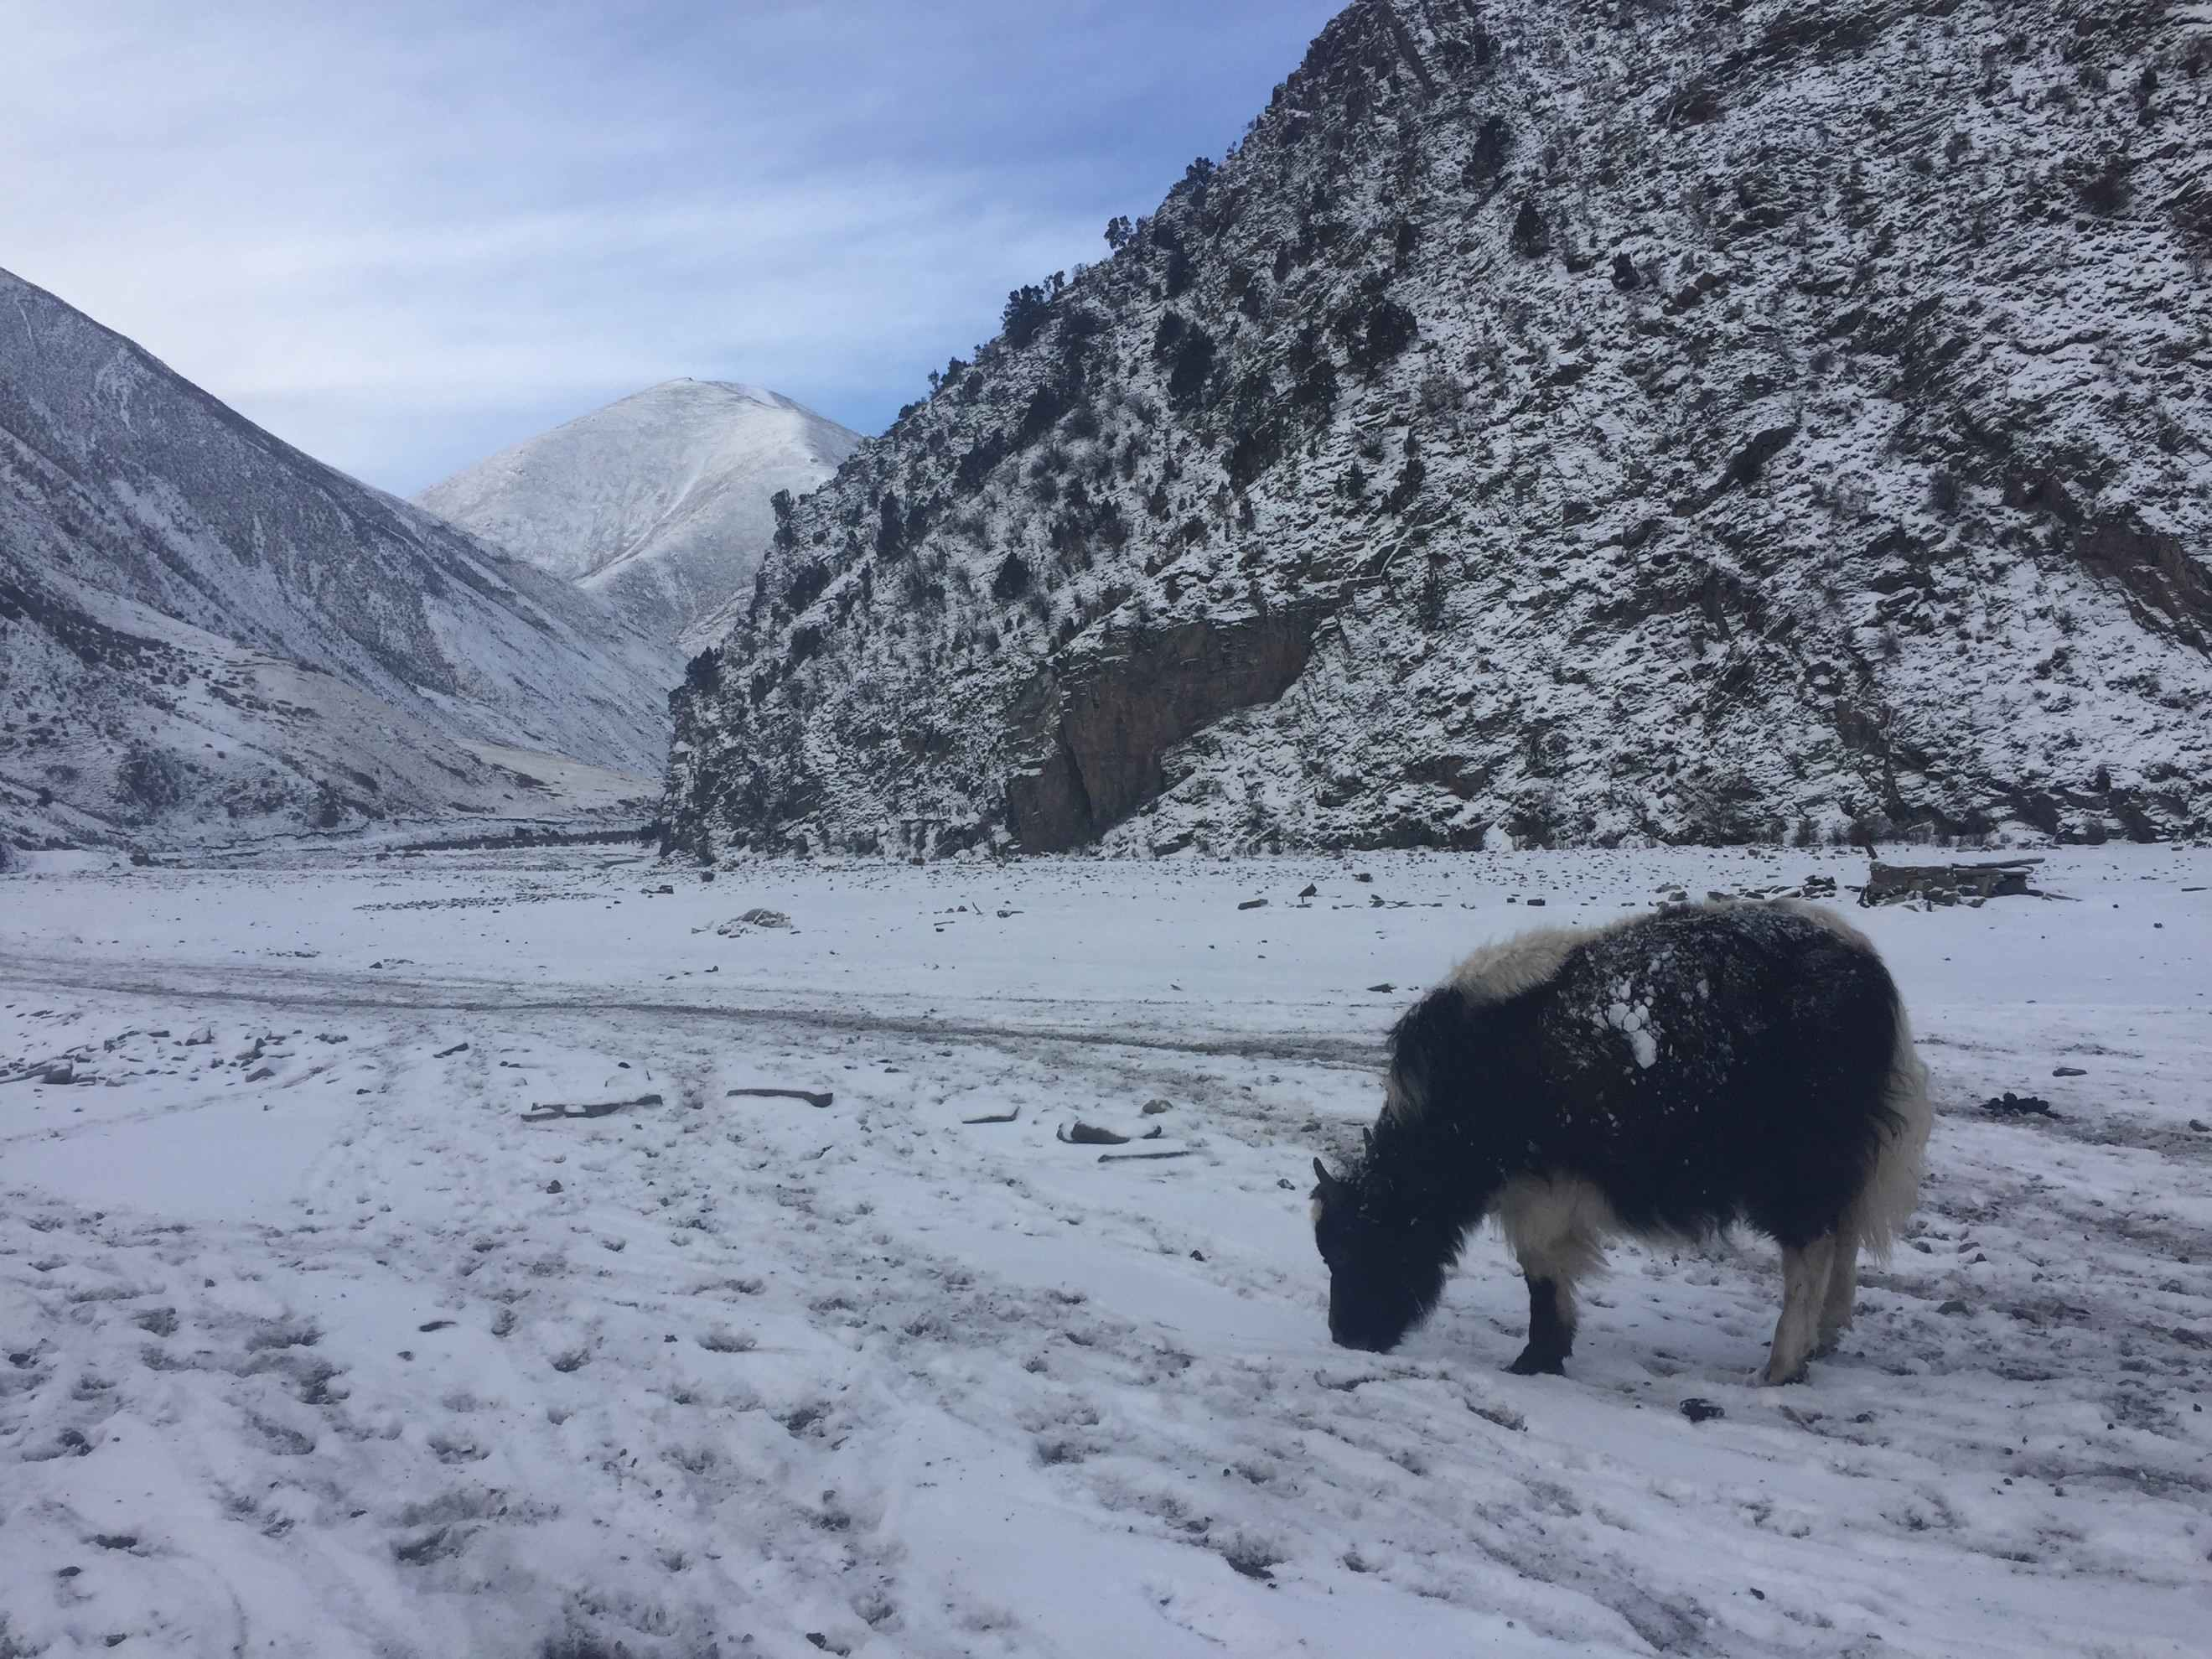 From rags to riches: Yaks help Tibetans battle poverty